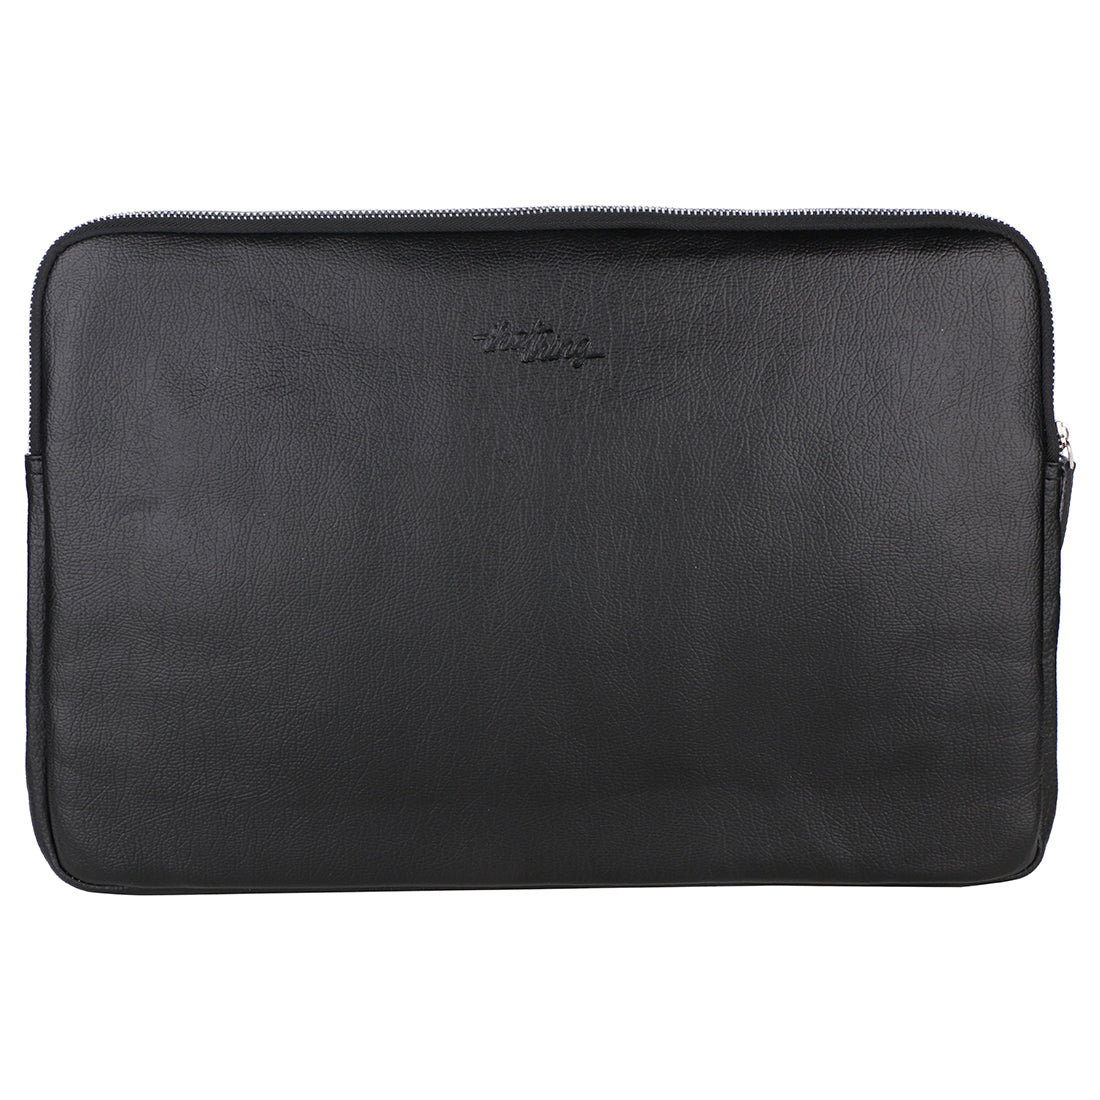 "Many People 15"" Laptop Sleeve"